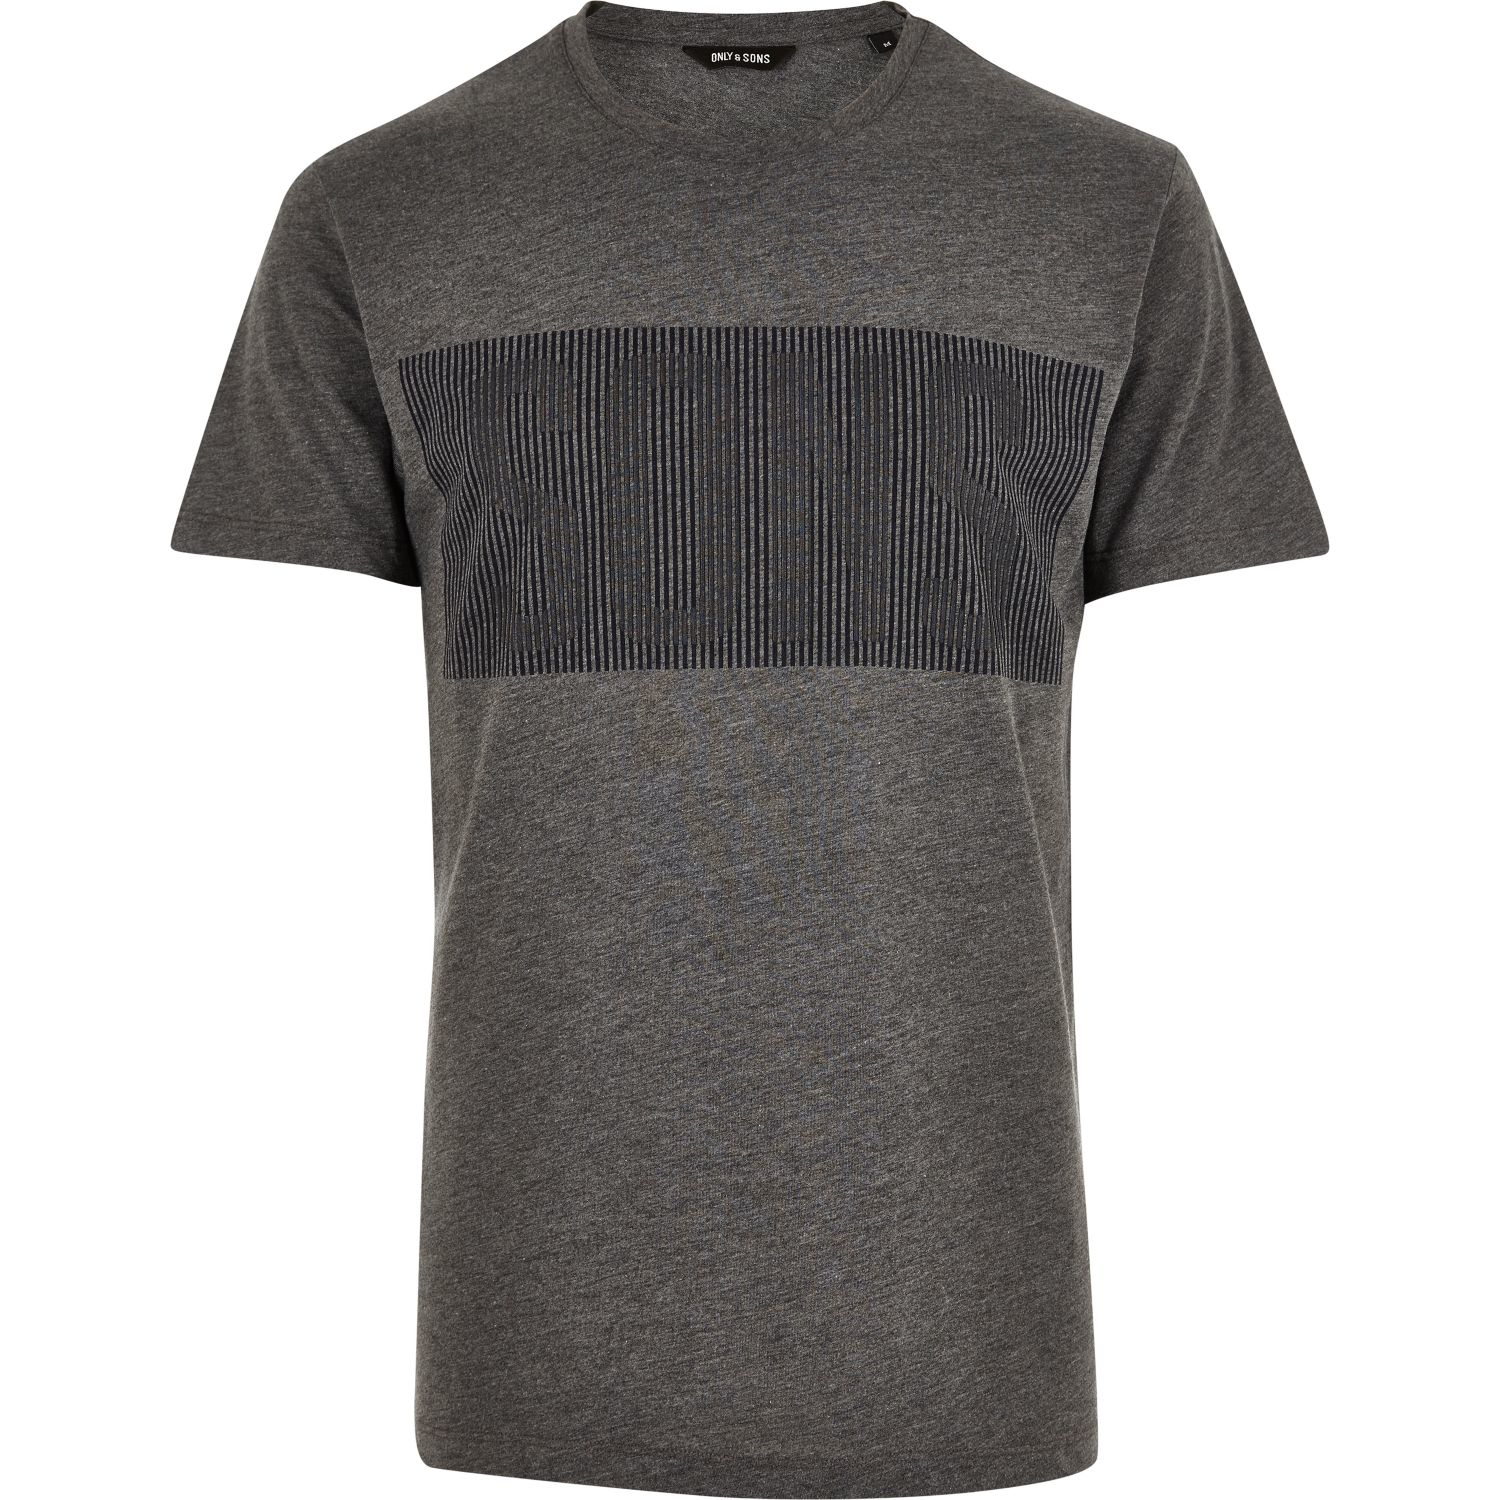 Lyst river island grey only sons graphic print t shirt for Graphic print t shirts